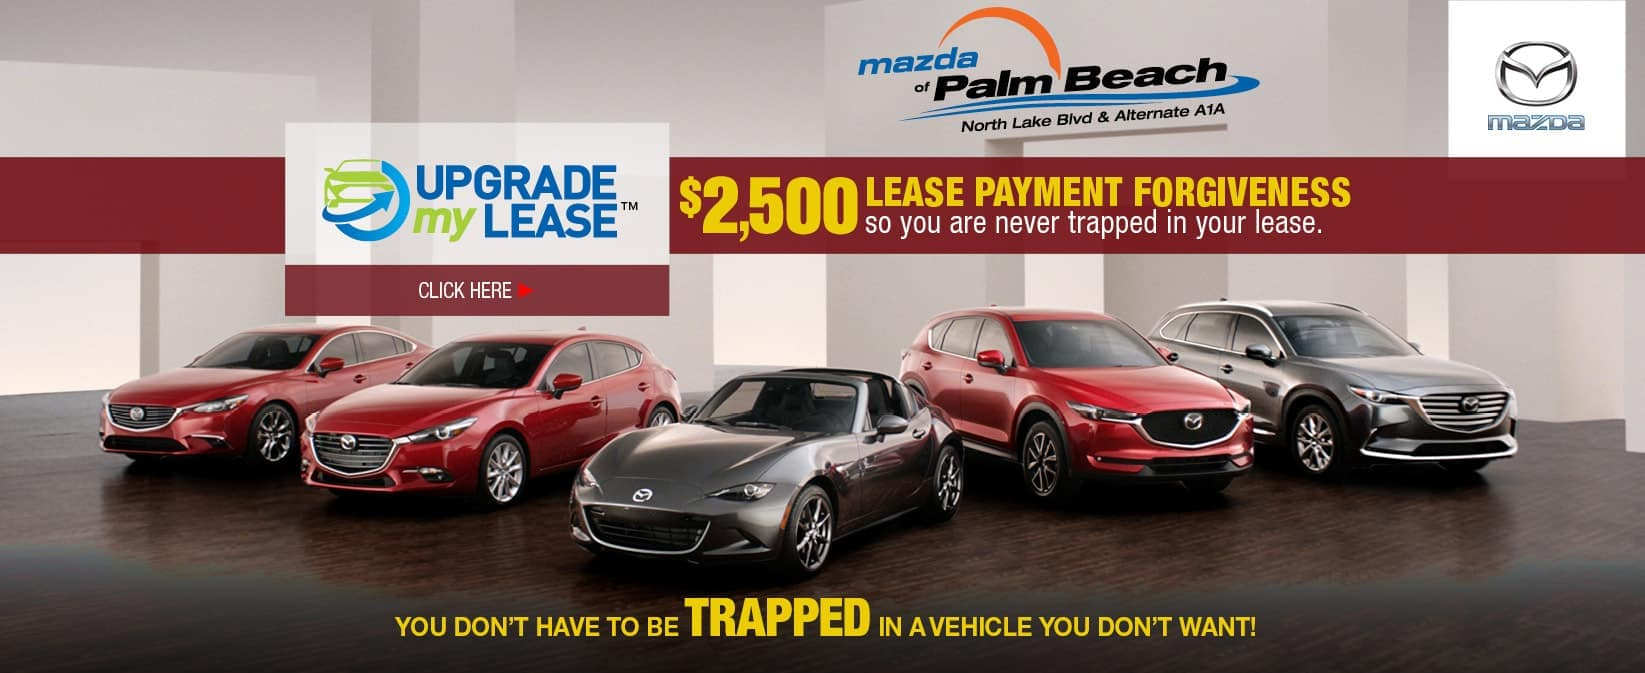 upgrade lease